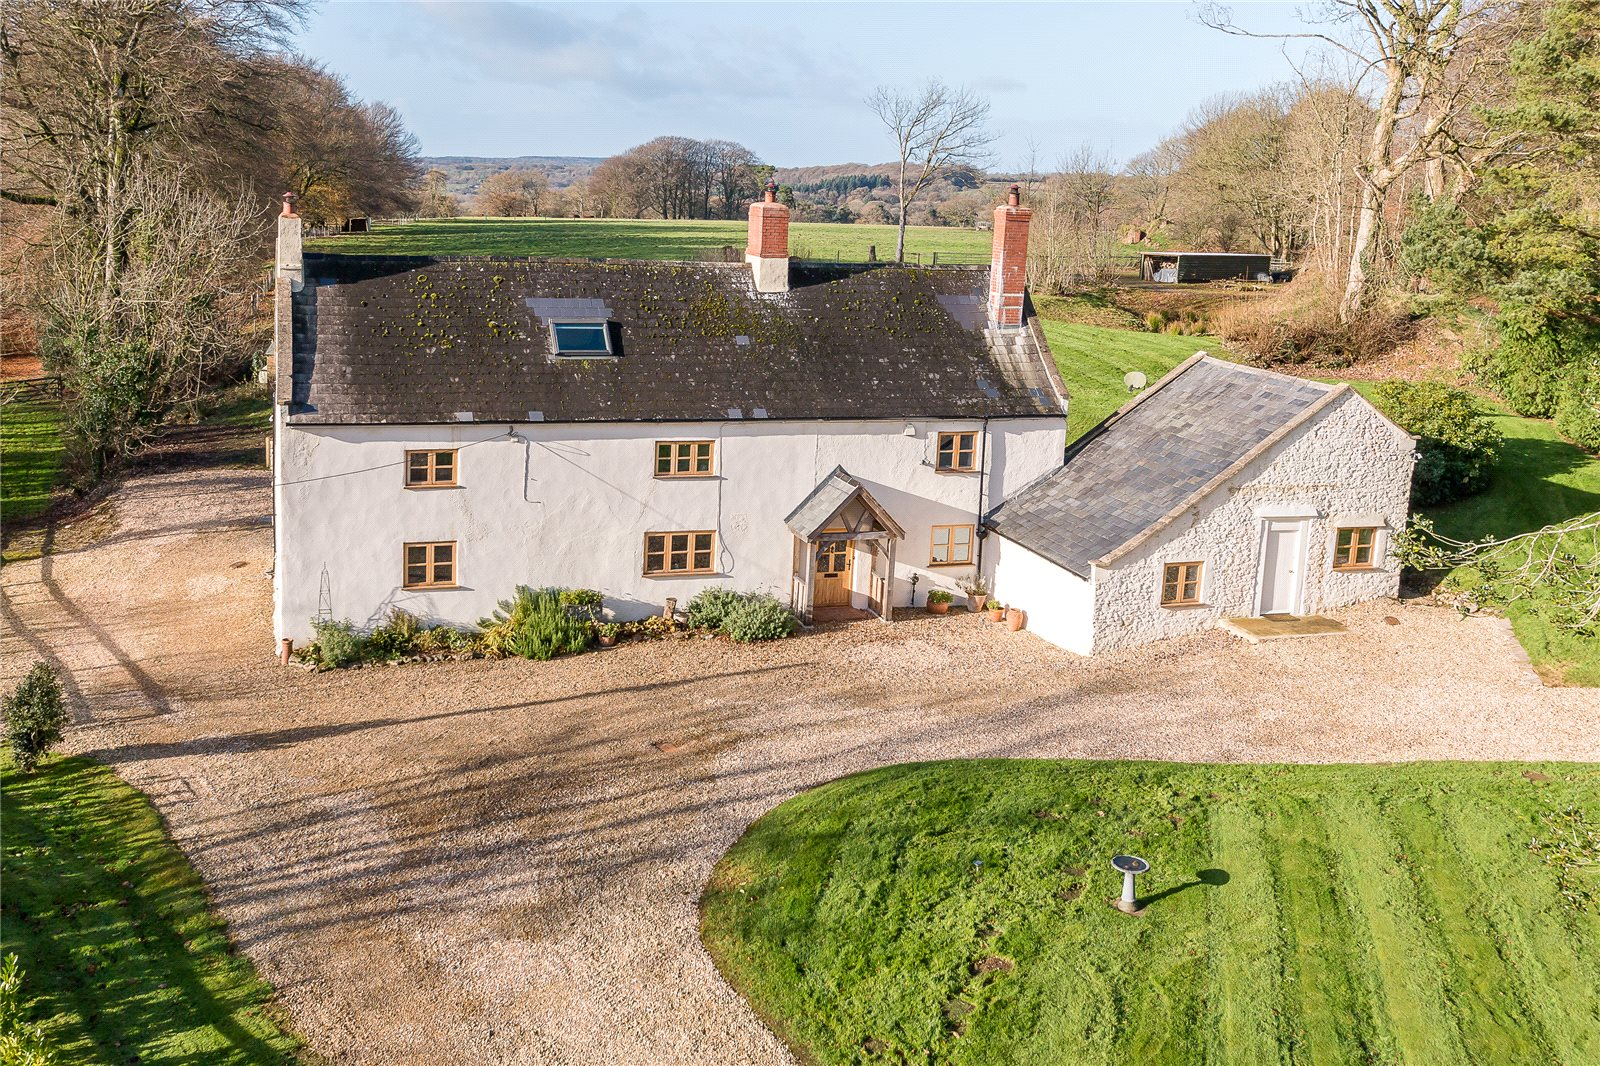 Single Family Home for Sale at Churchstanton, Taunton, Somerset, TA3 Taunton, England